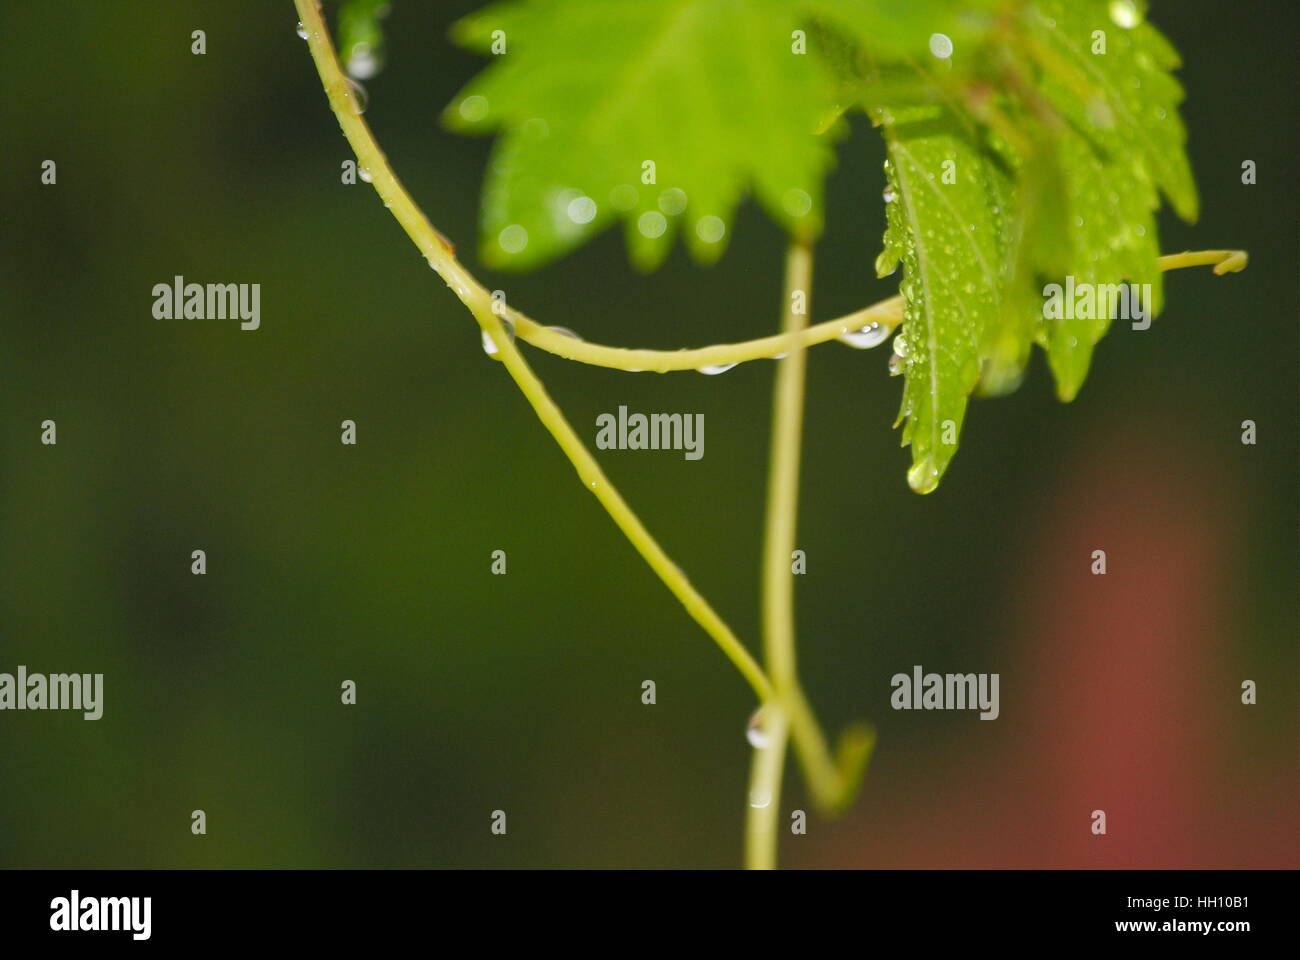 water drops in grapes' leaves captured with high dimension to show the beauty of nature - Stock Image